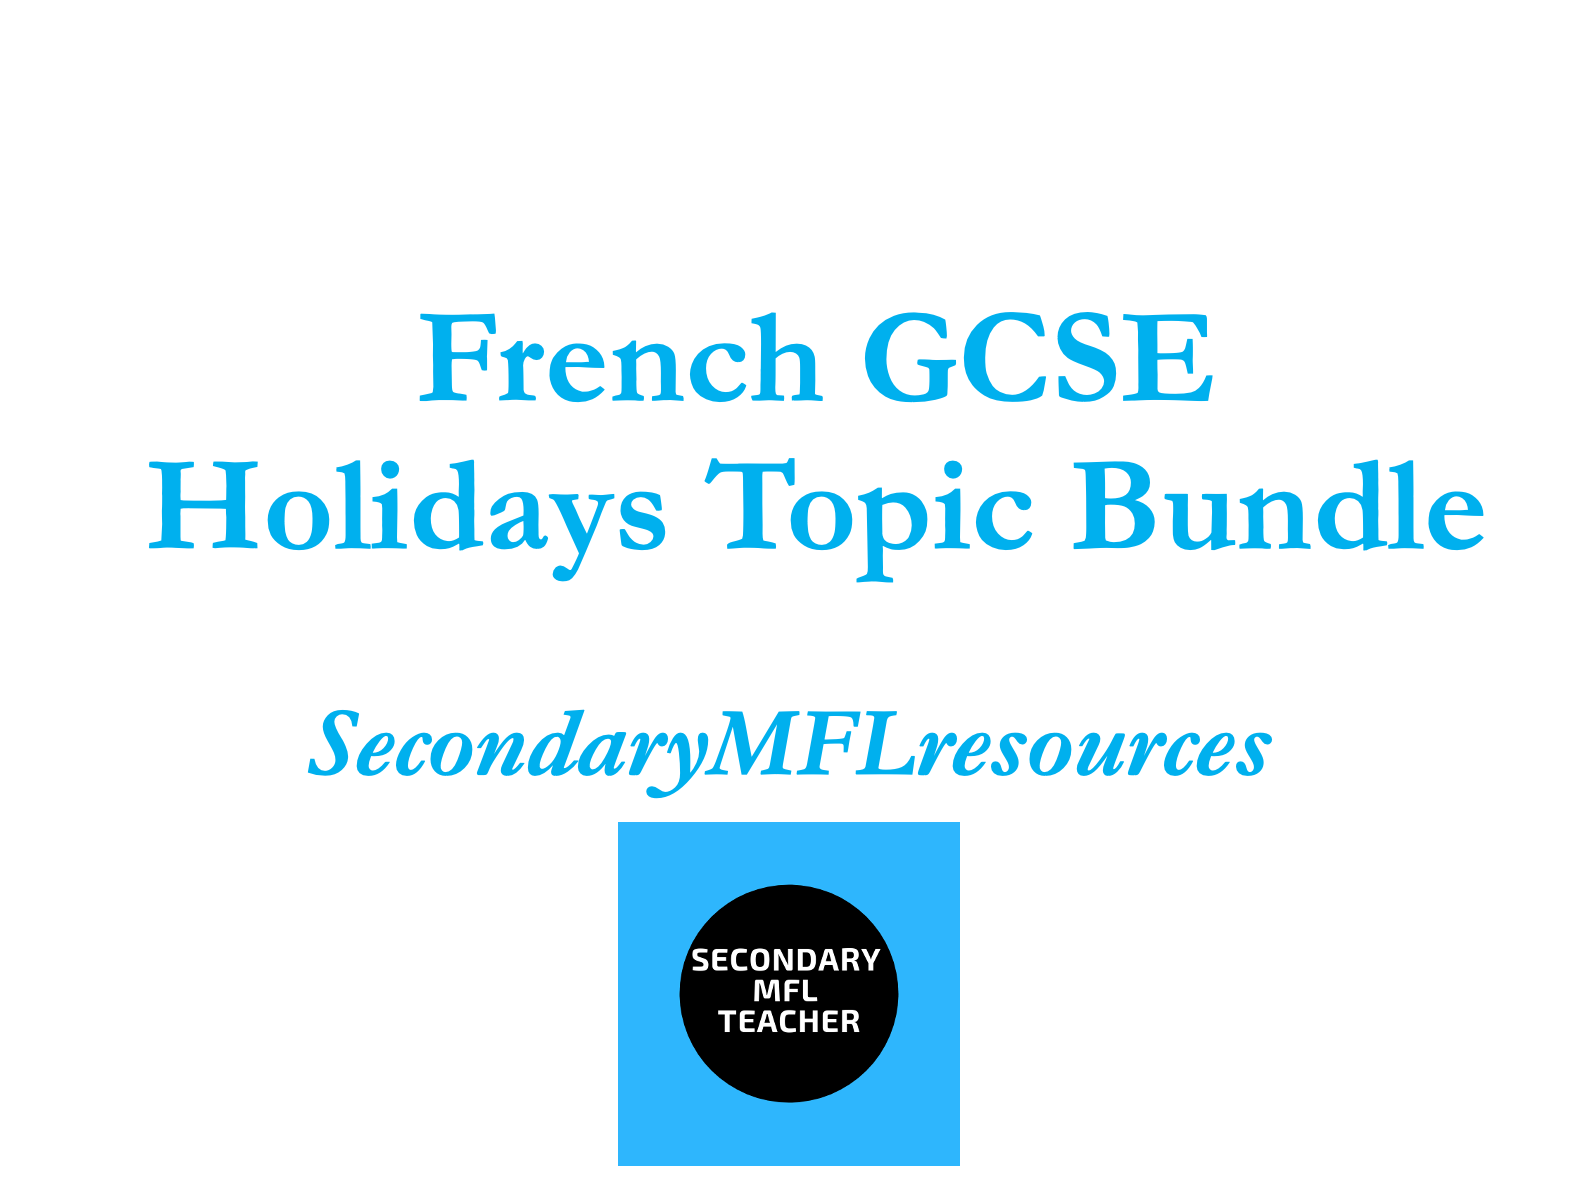 French GCSE Holidays Topic Bundle (10 resource packs)